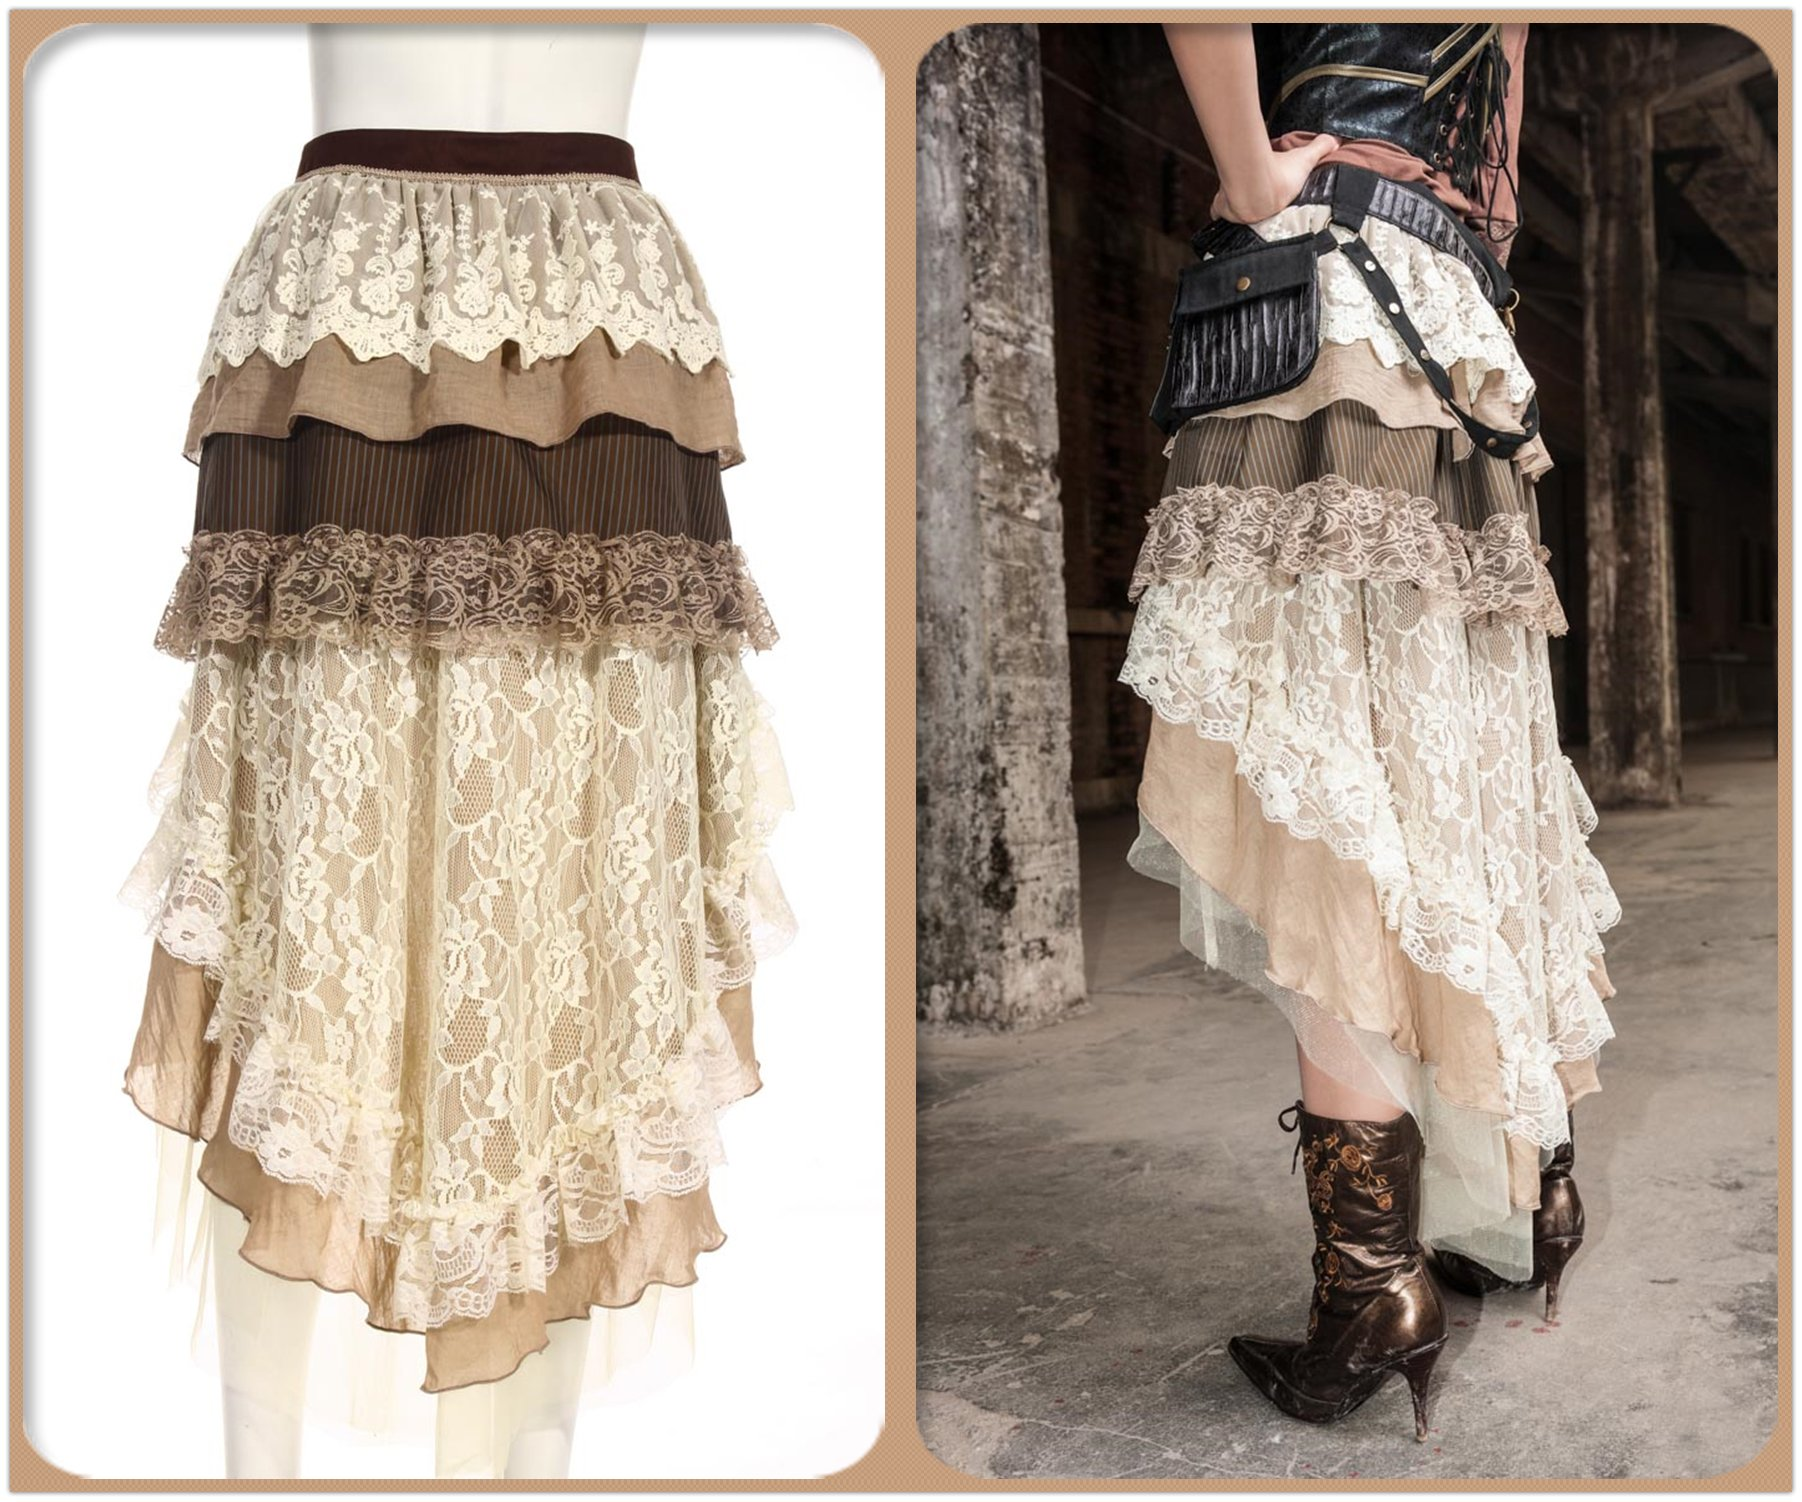 Steampunk Victorian Gothic Sexy Prom Dresses Homecoming Dresses Wedding Dresses Beige 5